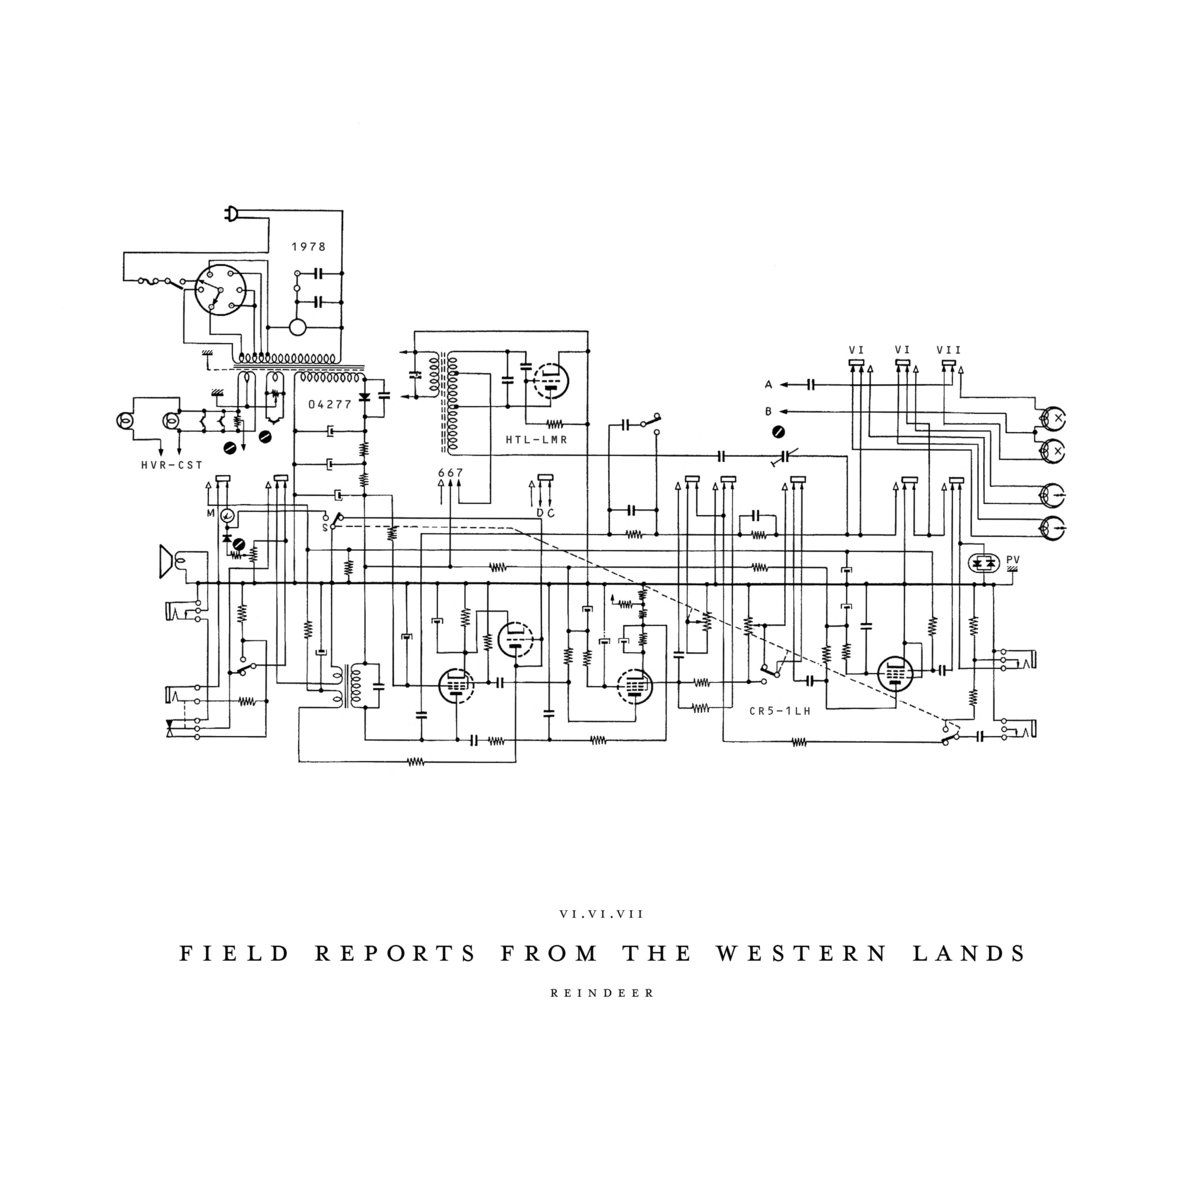 a2715573839_10 field reports from the western lands anette records